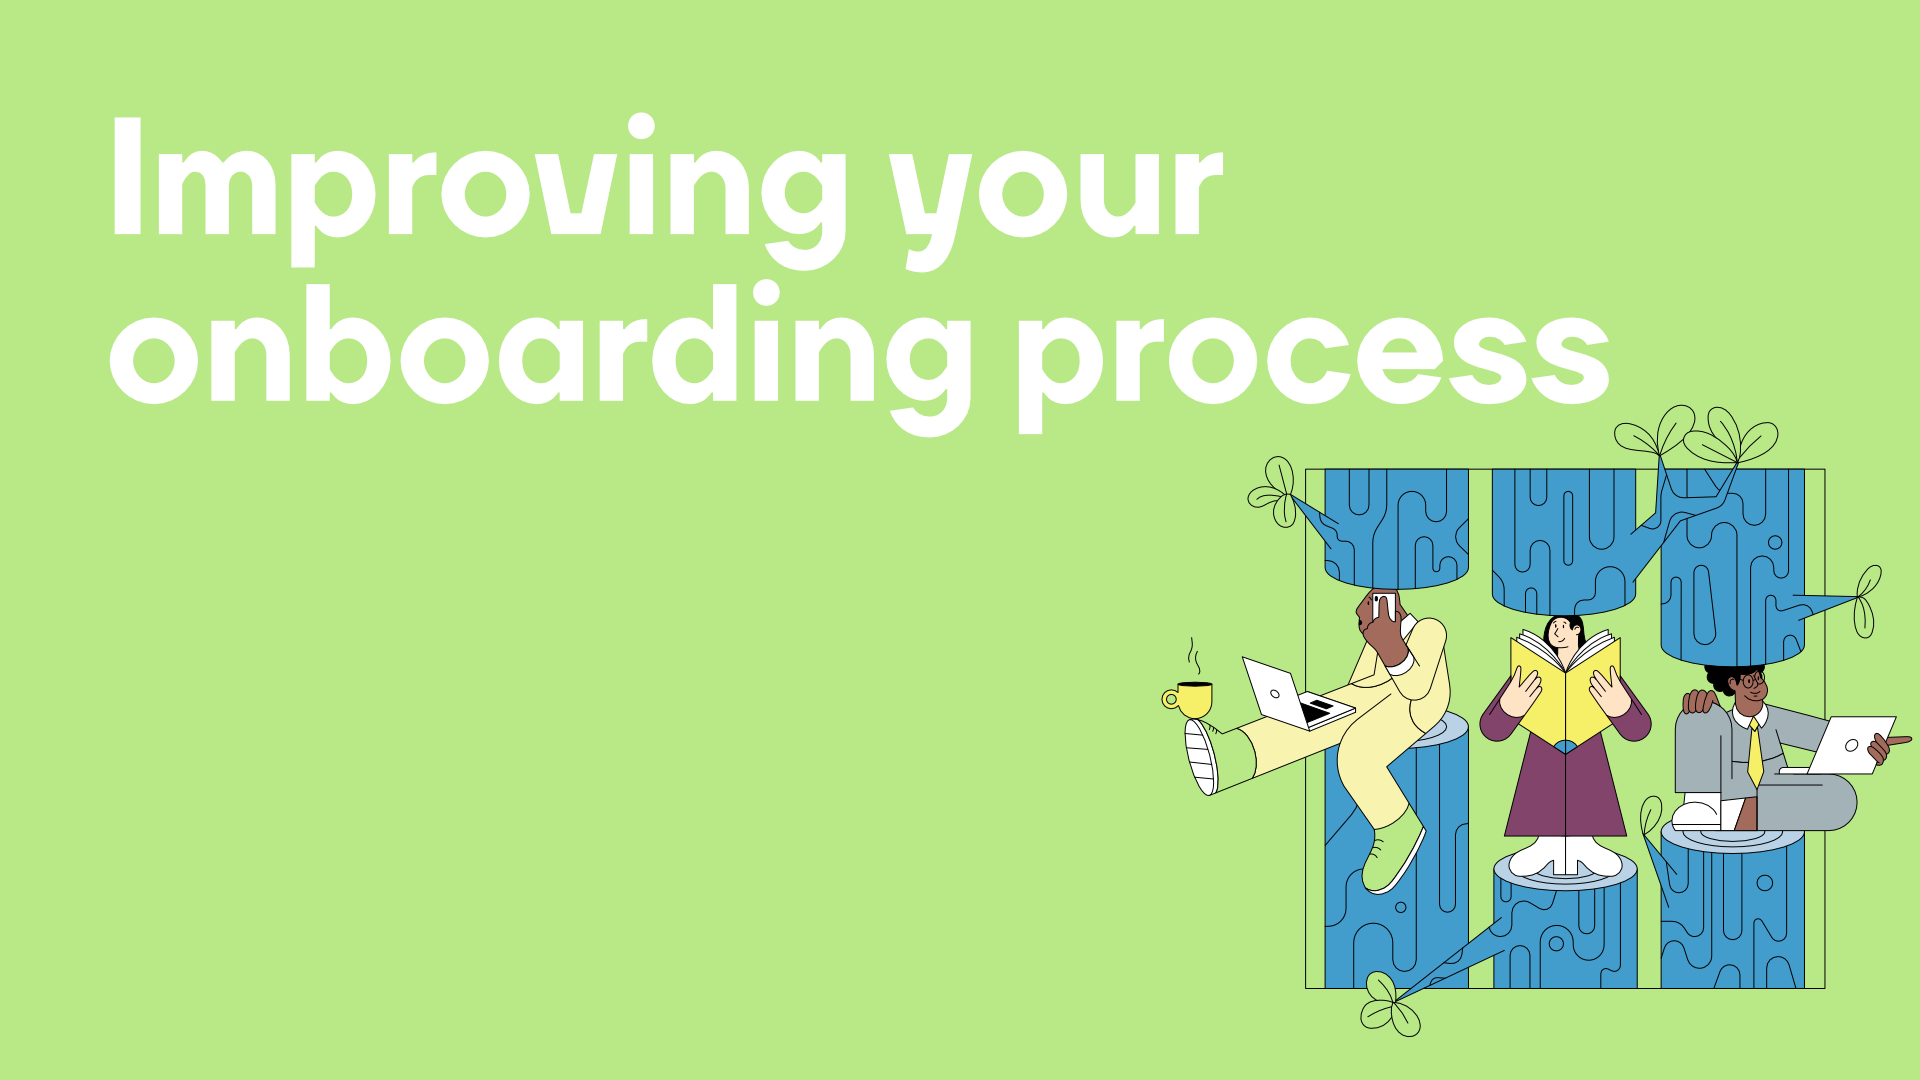 Improving your onboarding process